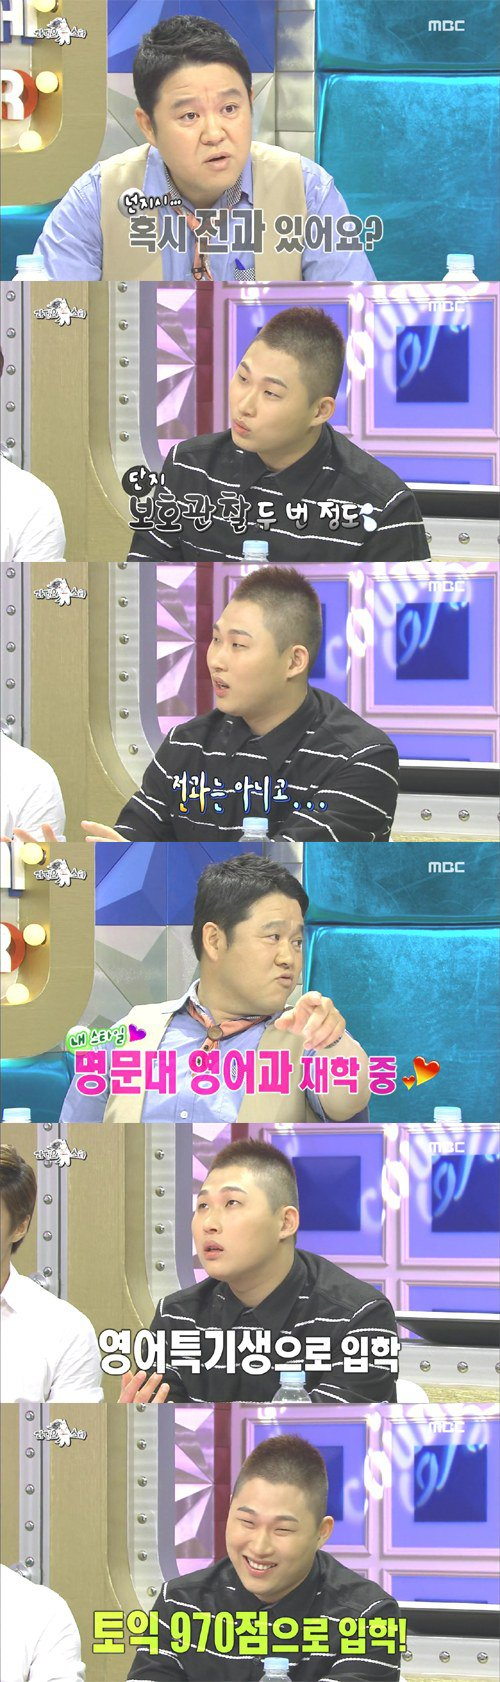 swings_radio star